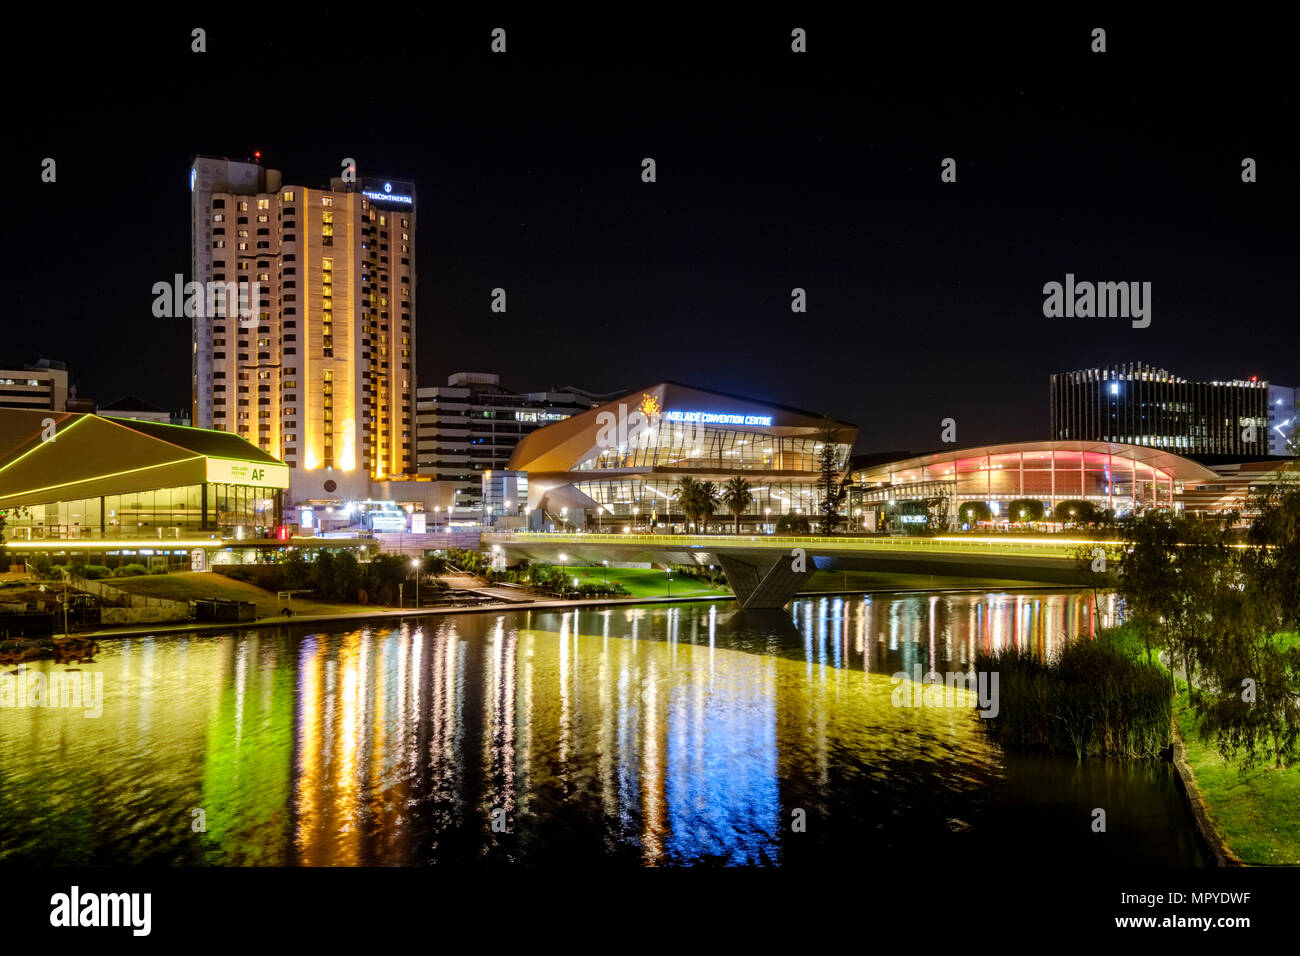 The Adelaide city skyline at night featuring the Torrens Riverbank precinct - Stock Image